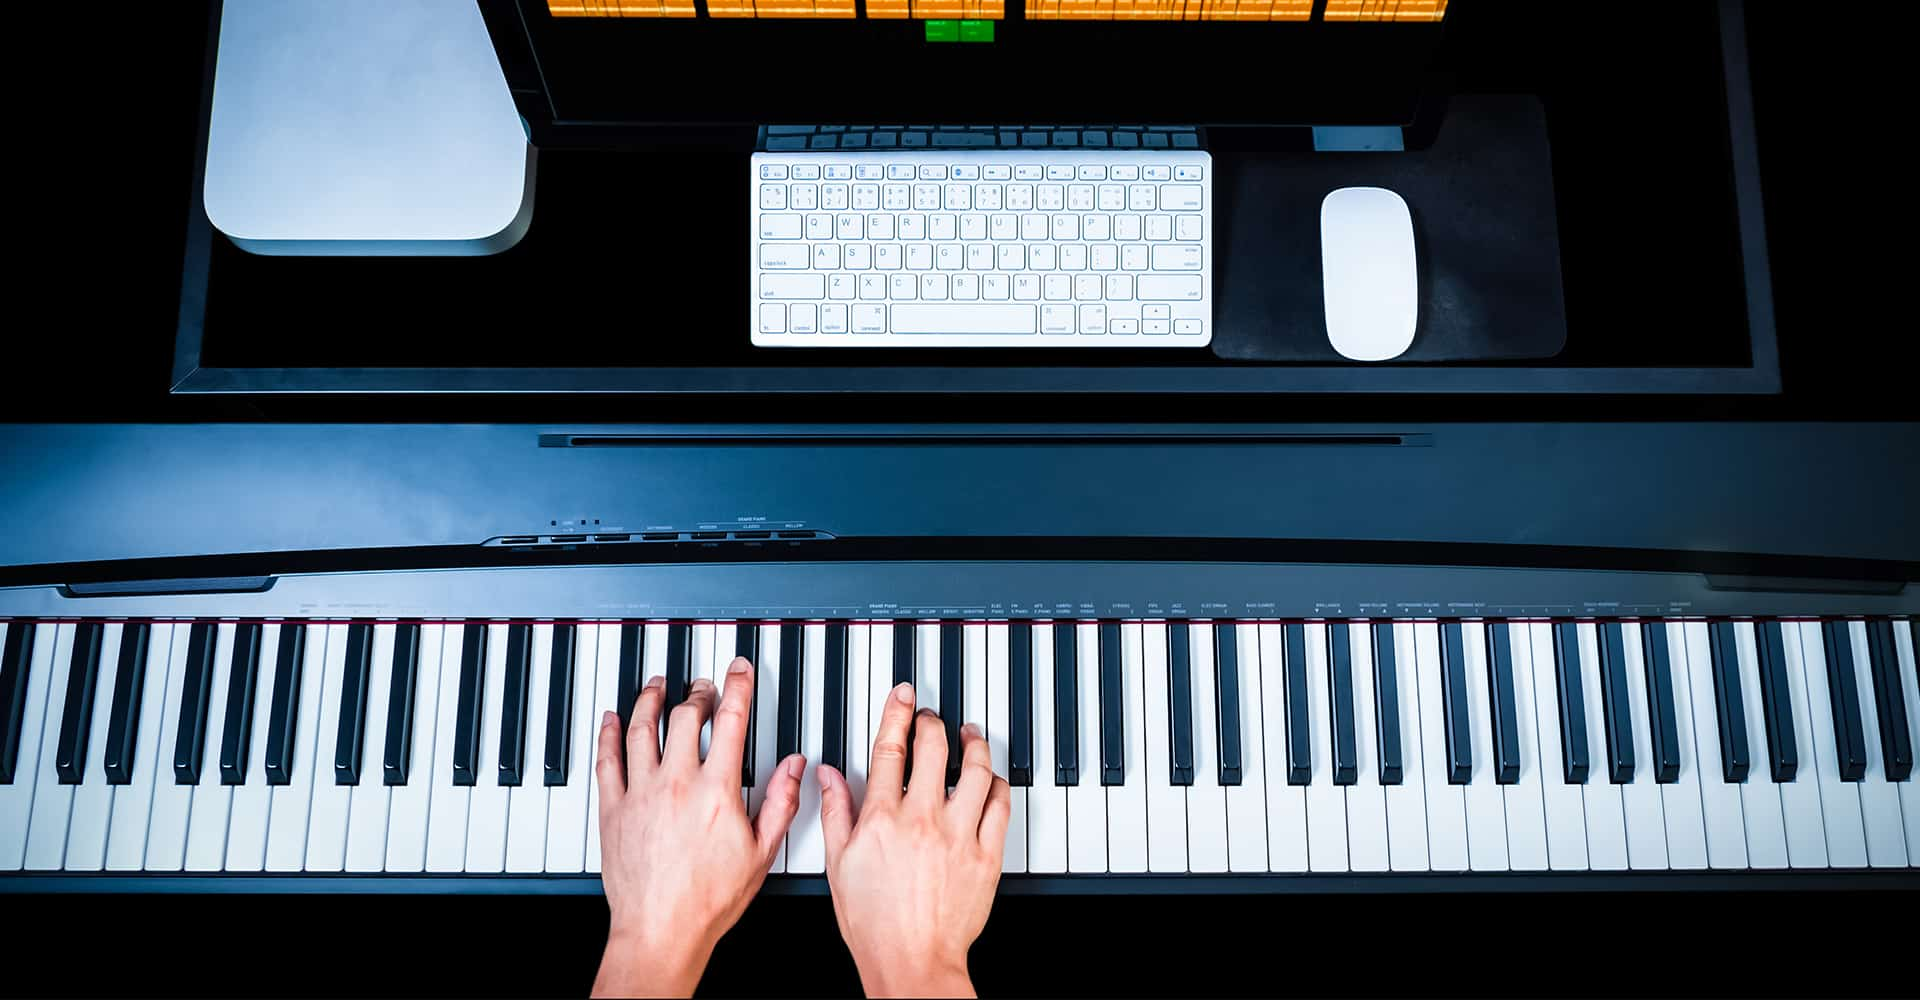 11 Best Digital Pianos Reviewed - Beginners to Advanced Pianists [2019]